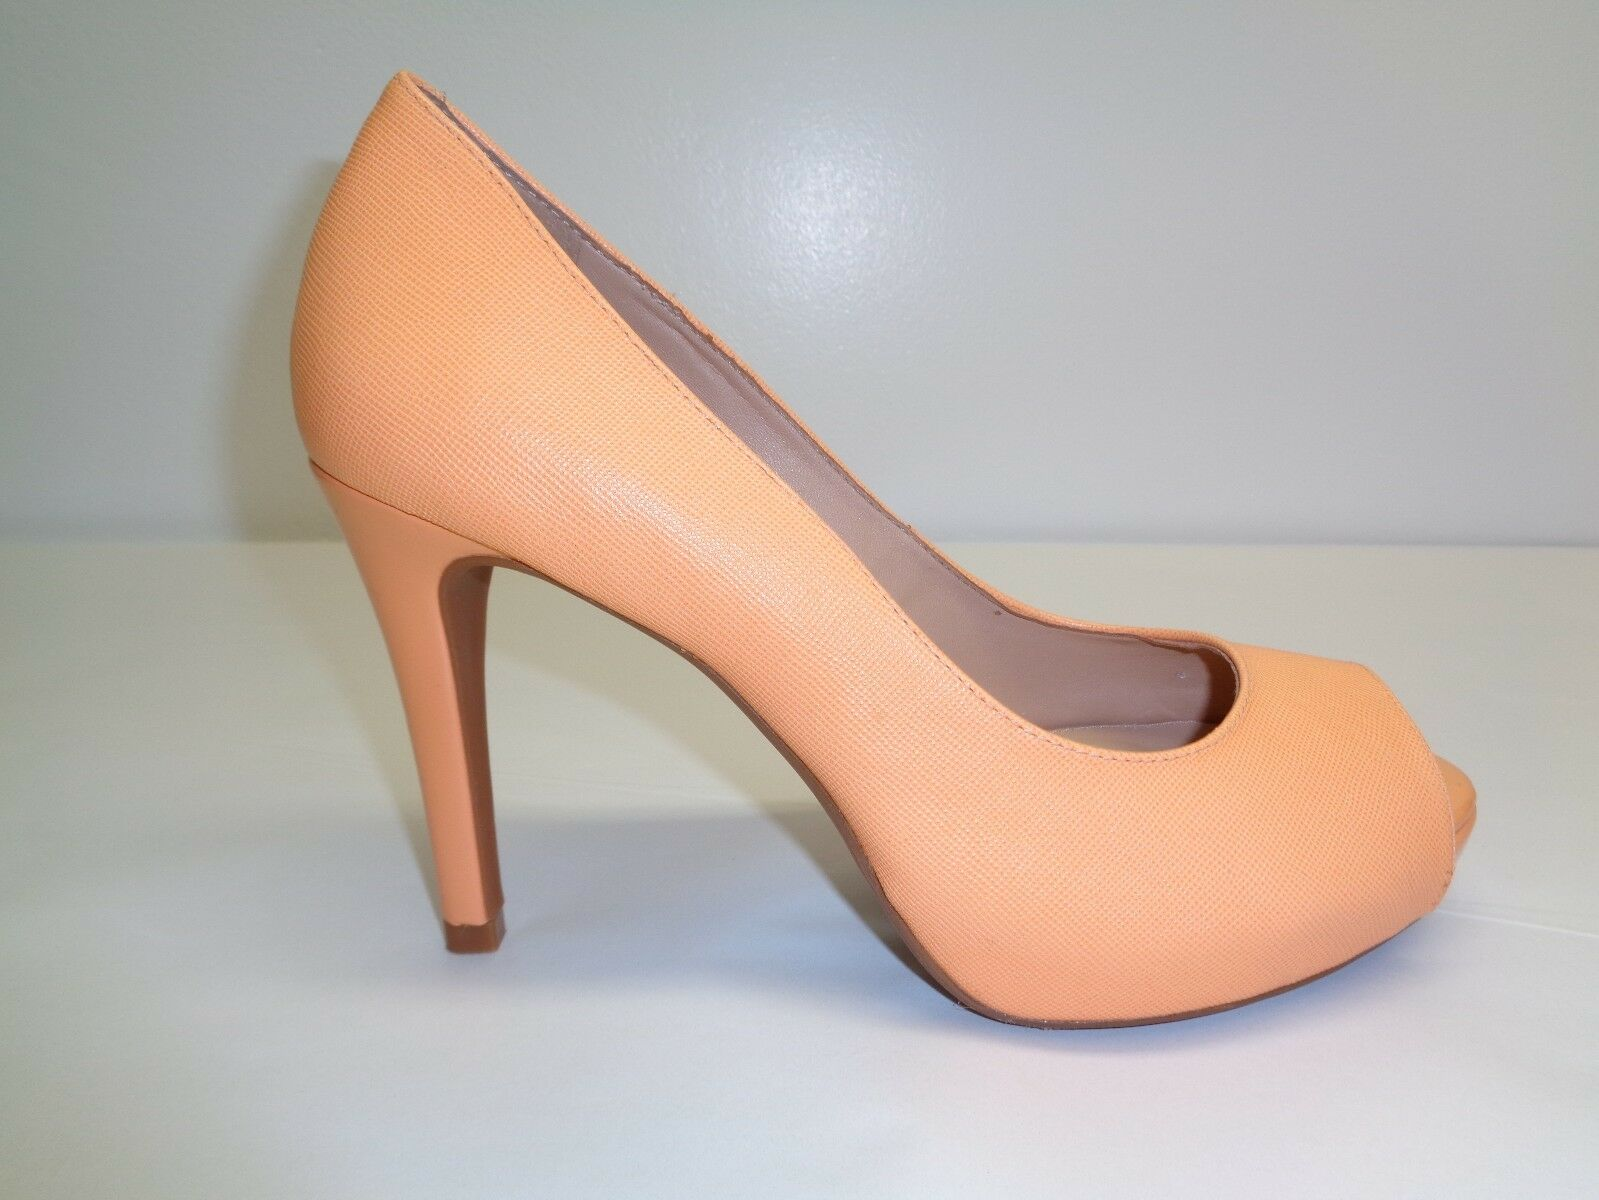 Antonio Melani Size 9 M ERIKA Orange Leather Open Toe Heels New Donna Shoes